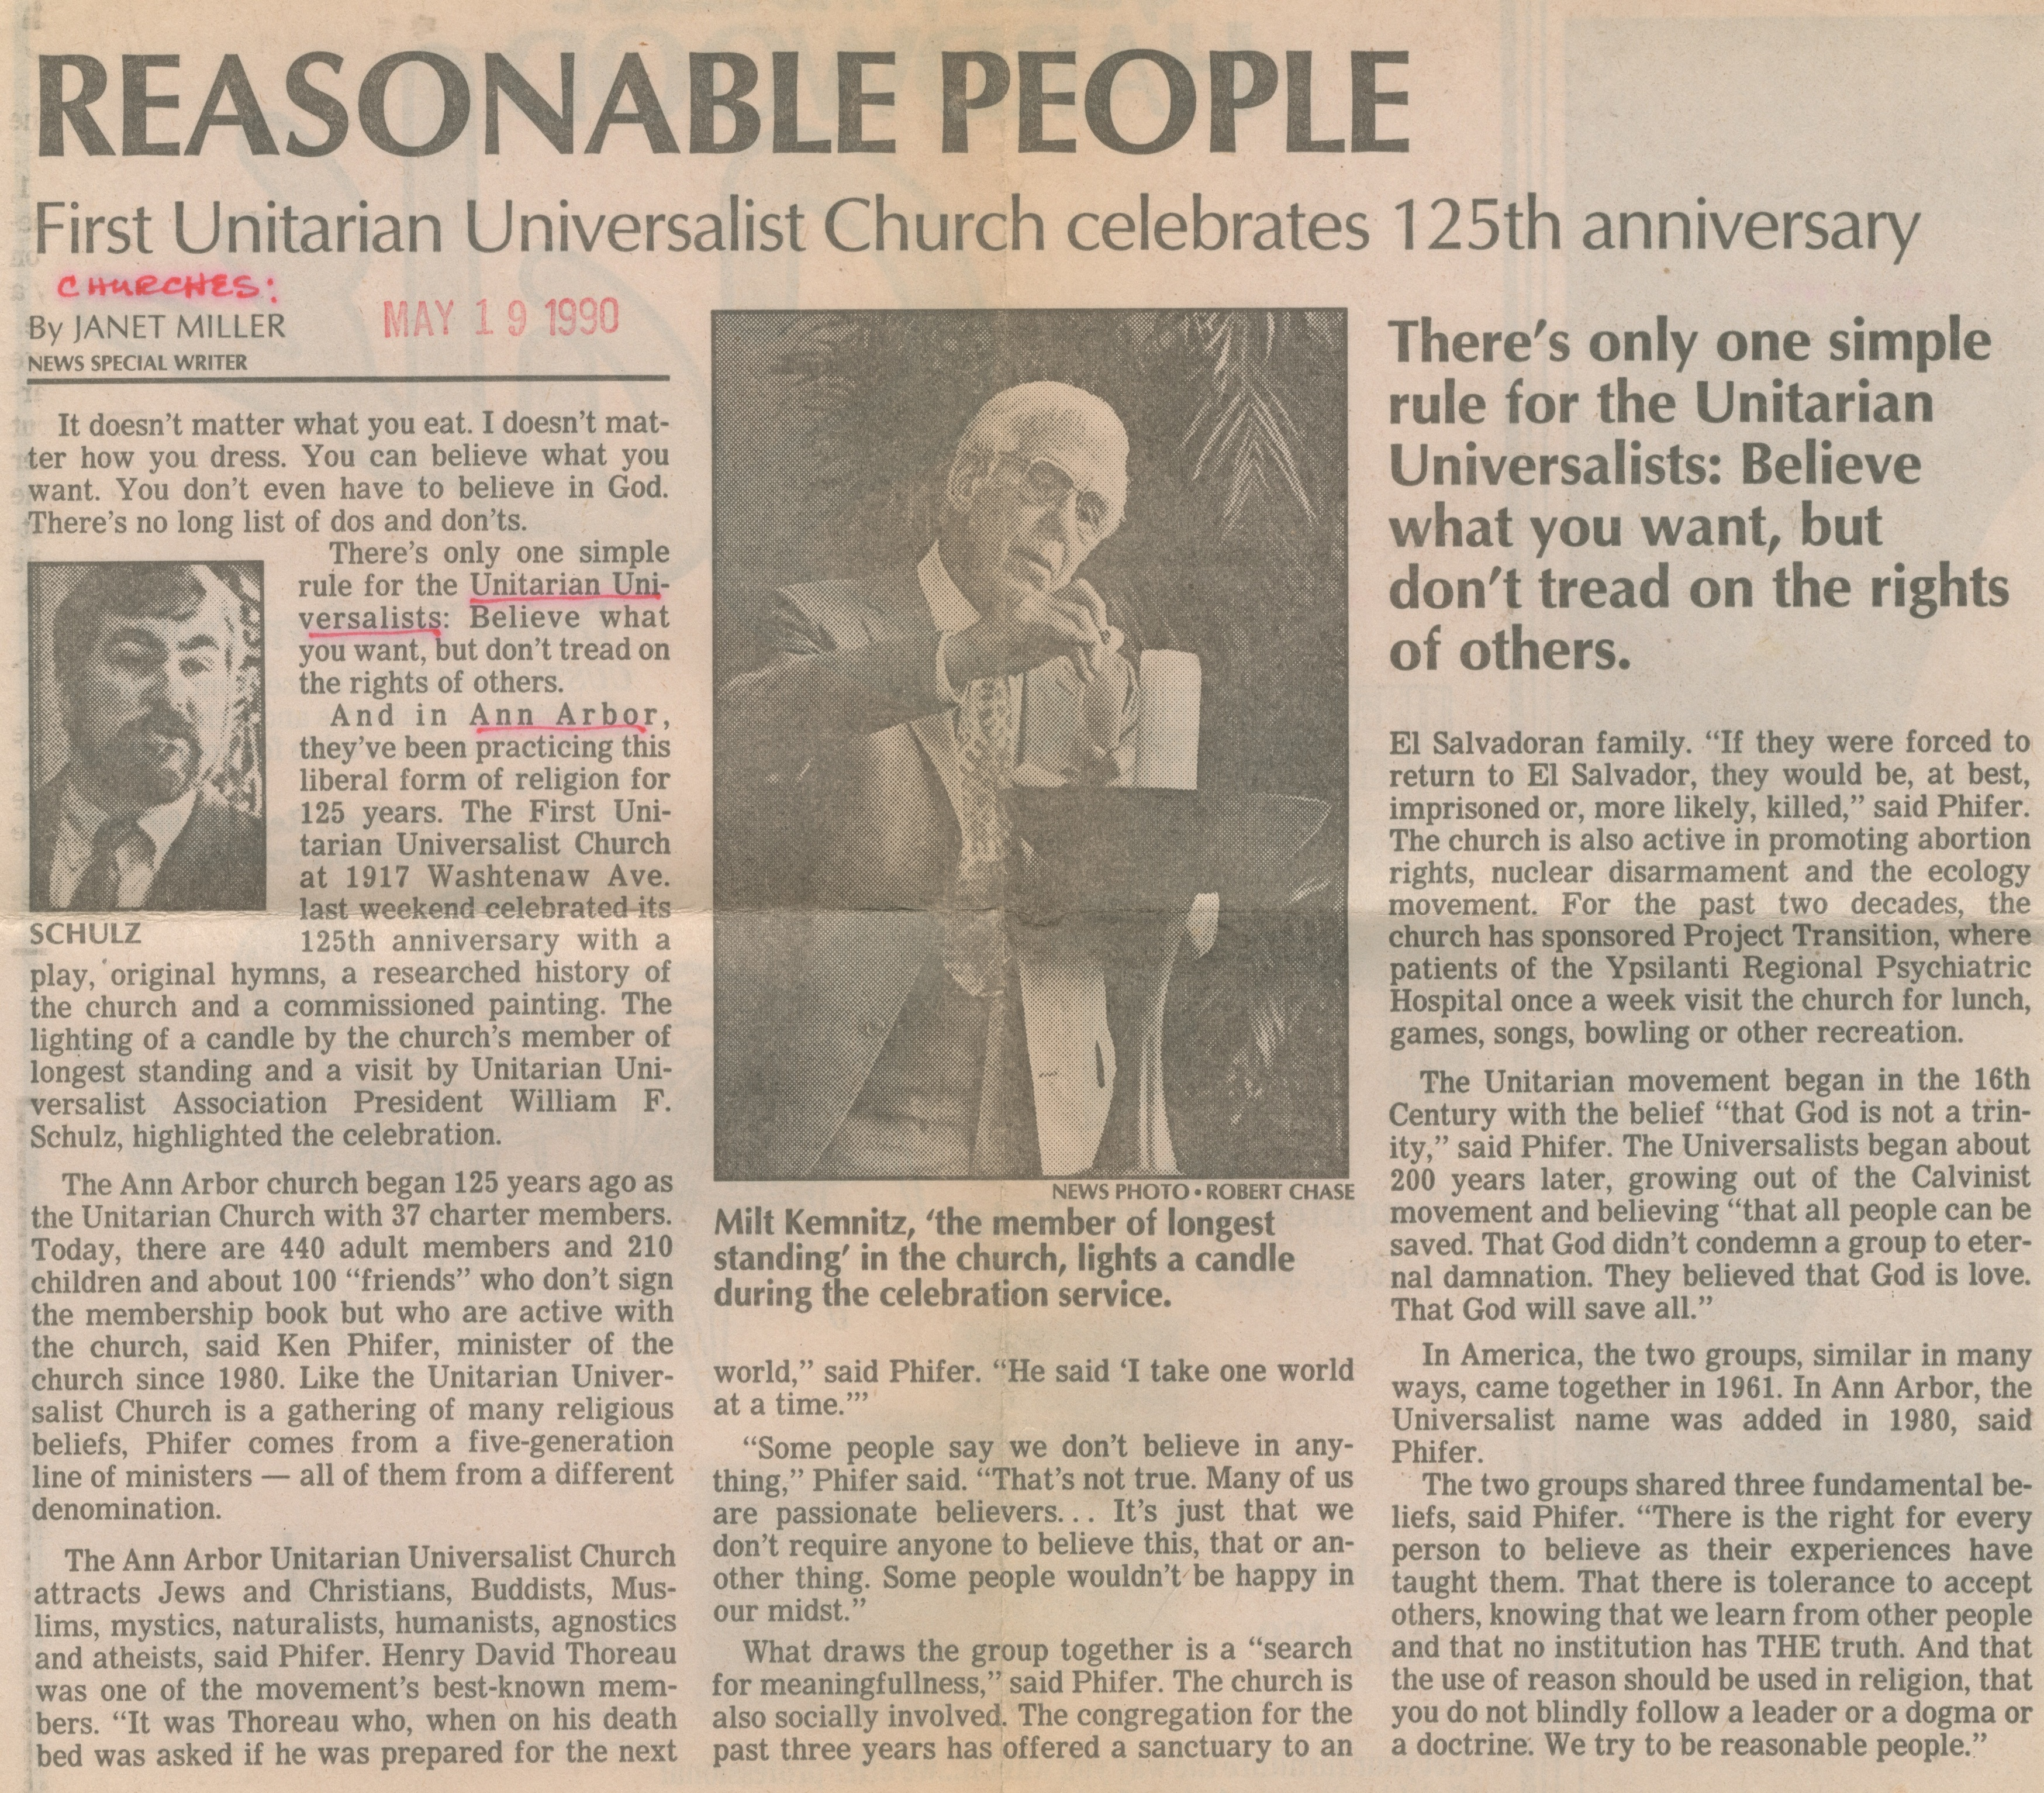 Reasonable People - First Unitarian Universalist Church Celebrates 125th Anniversary image